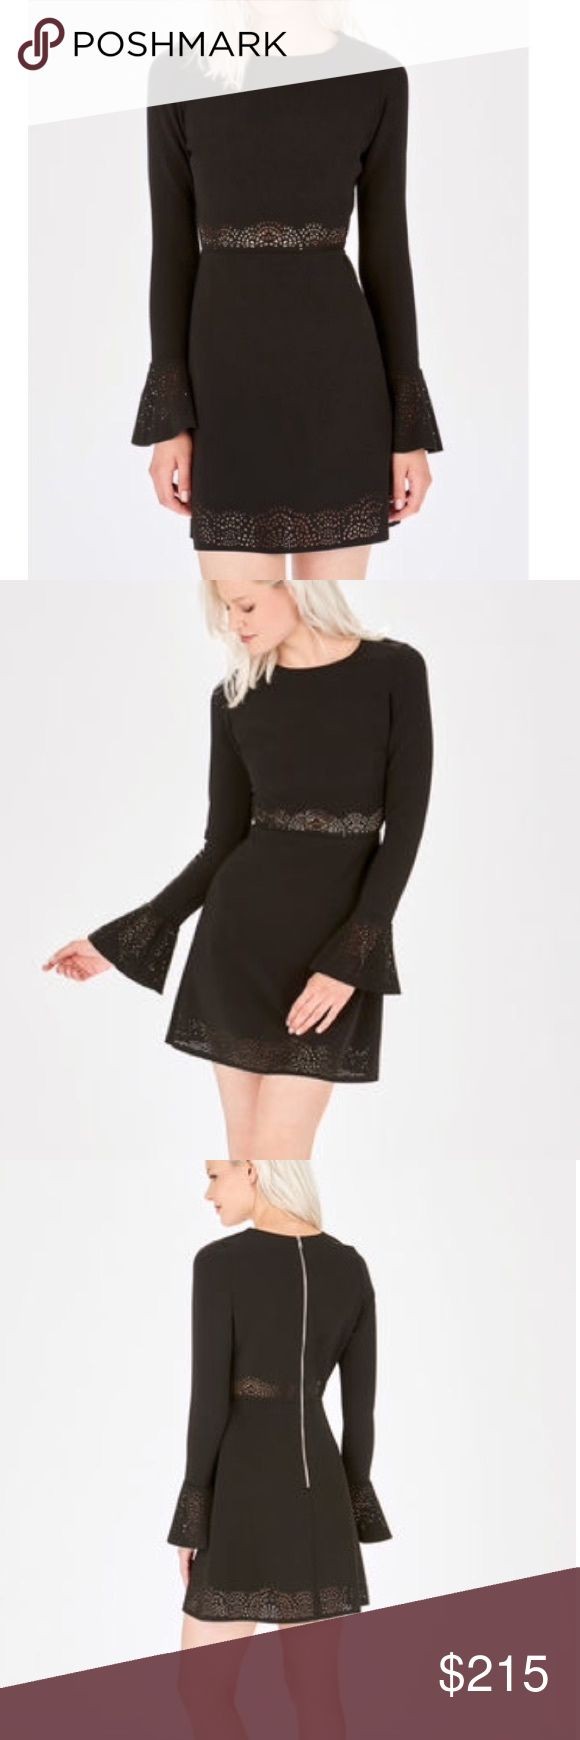 Parker cut out LBD New! Edgy and girly Parker fit and flare dress with bell sleeves, laser cut detail, and exposed zipper at the back. Poly/elastane blend. This dress is form fitting, runs true to size 0-2. No trades. Parker Dresses Mini